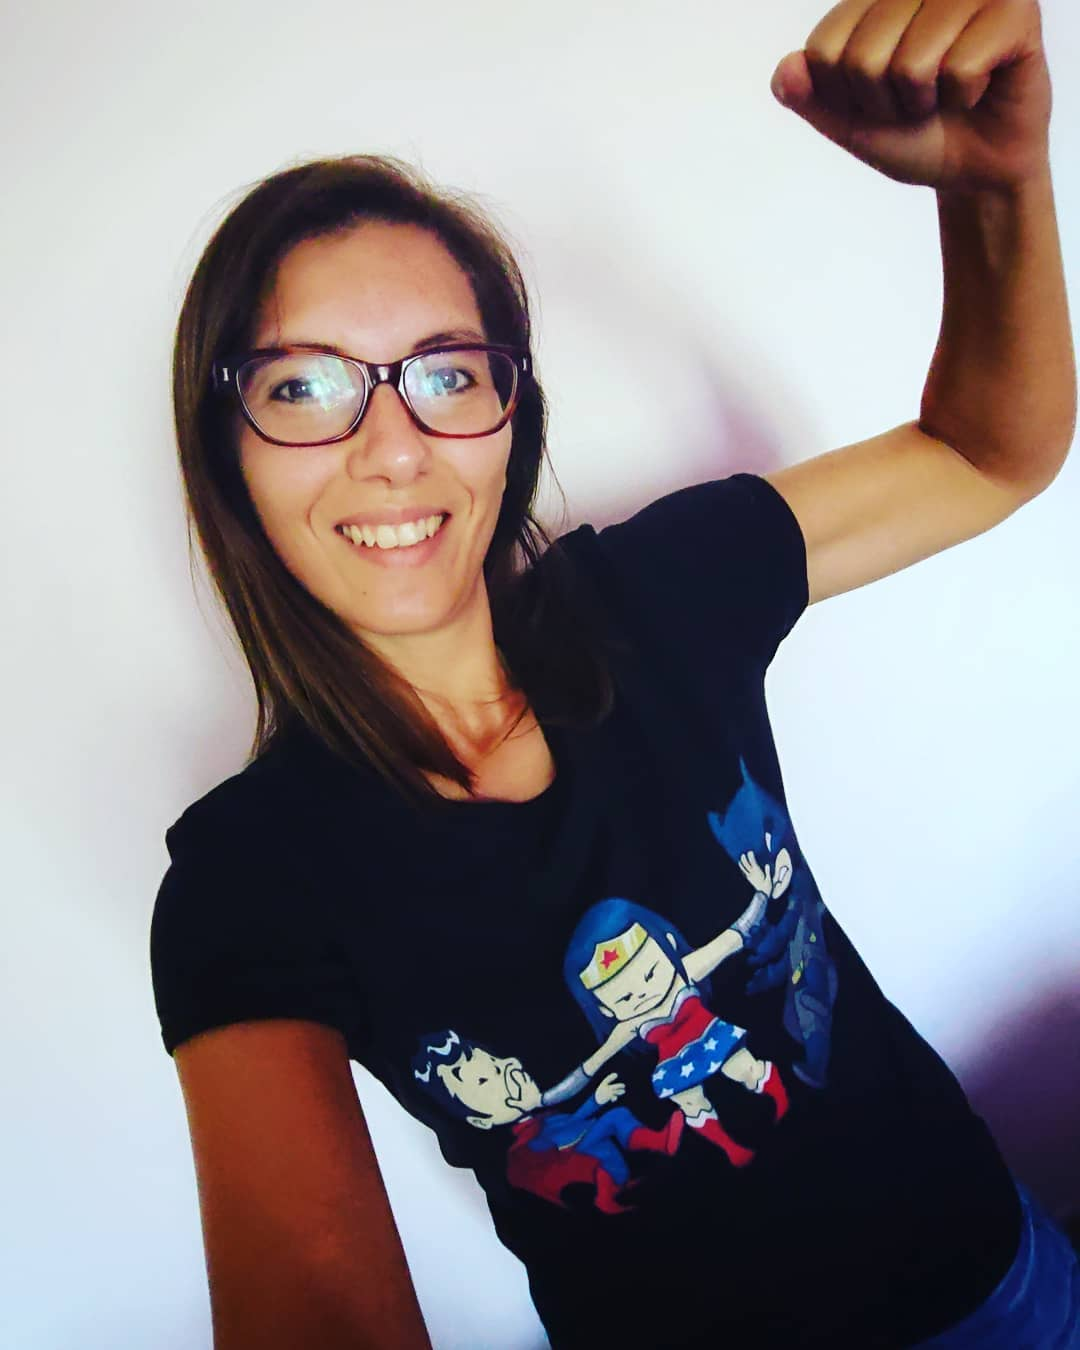 Wonder Woman Stop Fighting Batman V Superman Shirts photo review